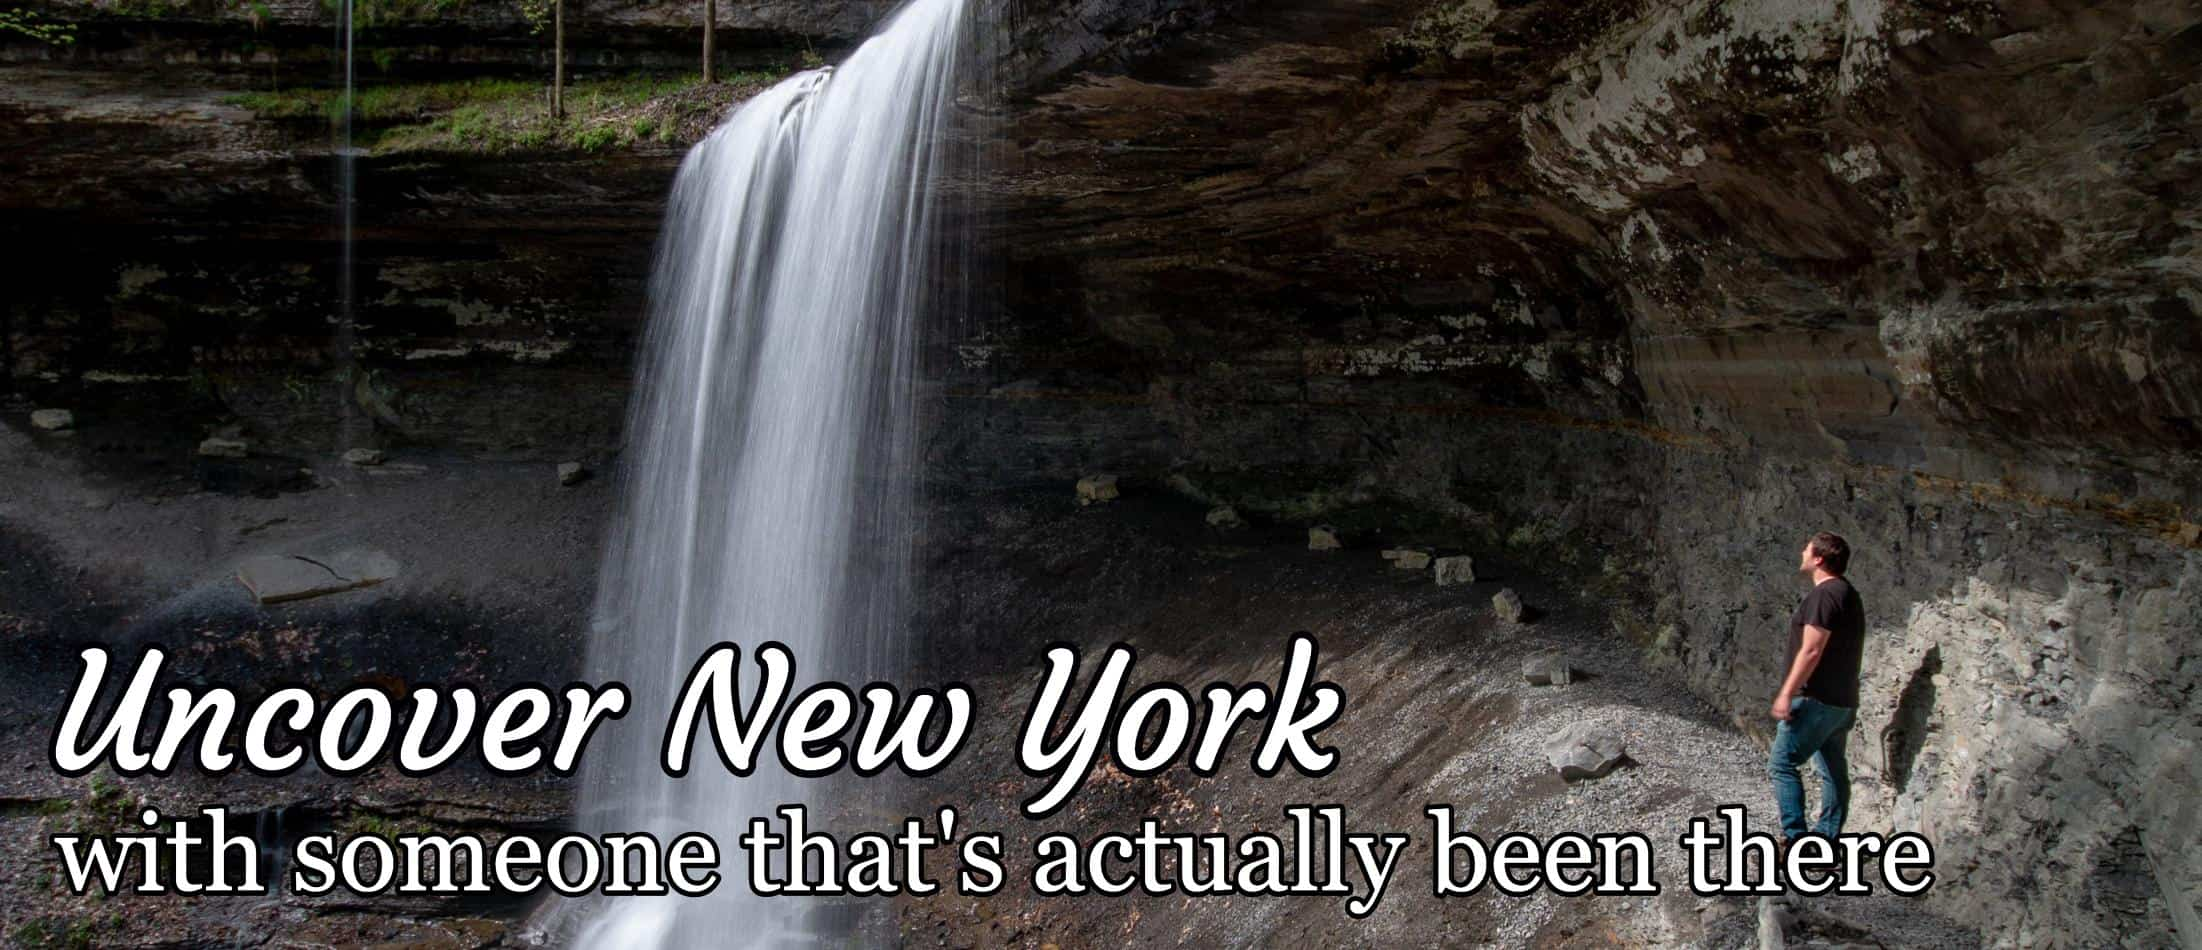 New York Travel Blog - Uncovering New York